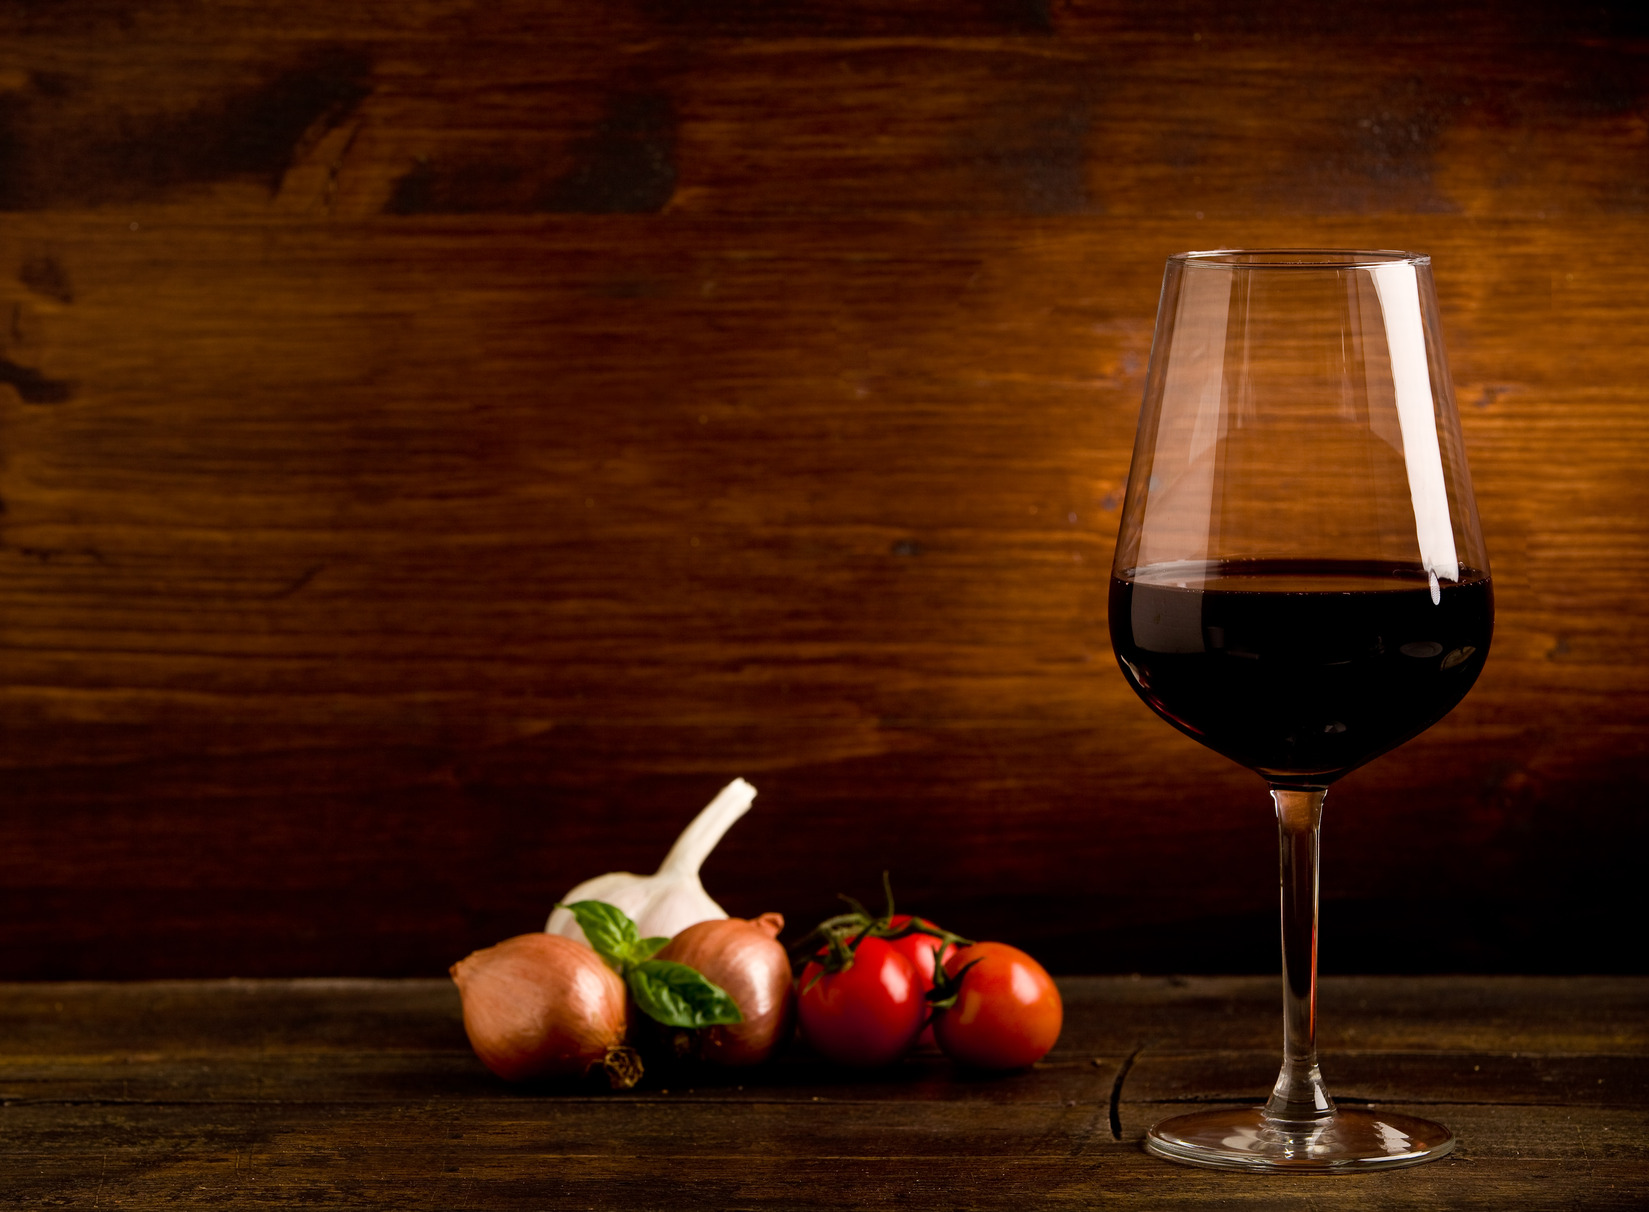 How to: Selecting the perfect wine